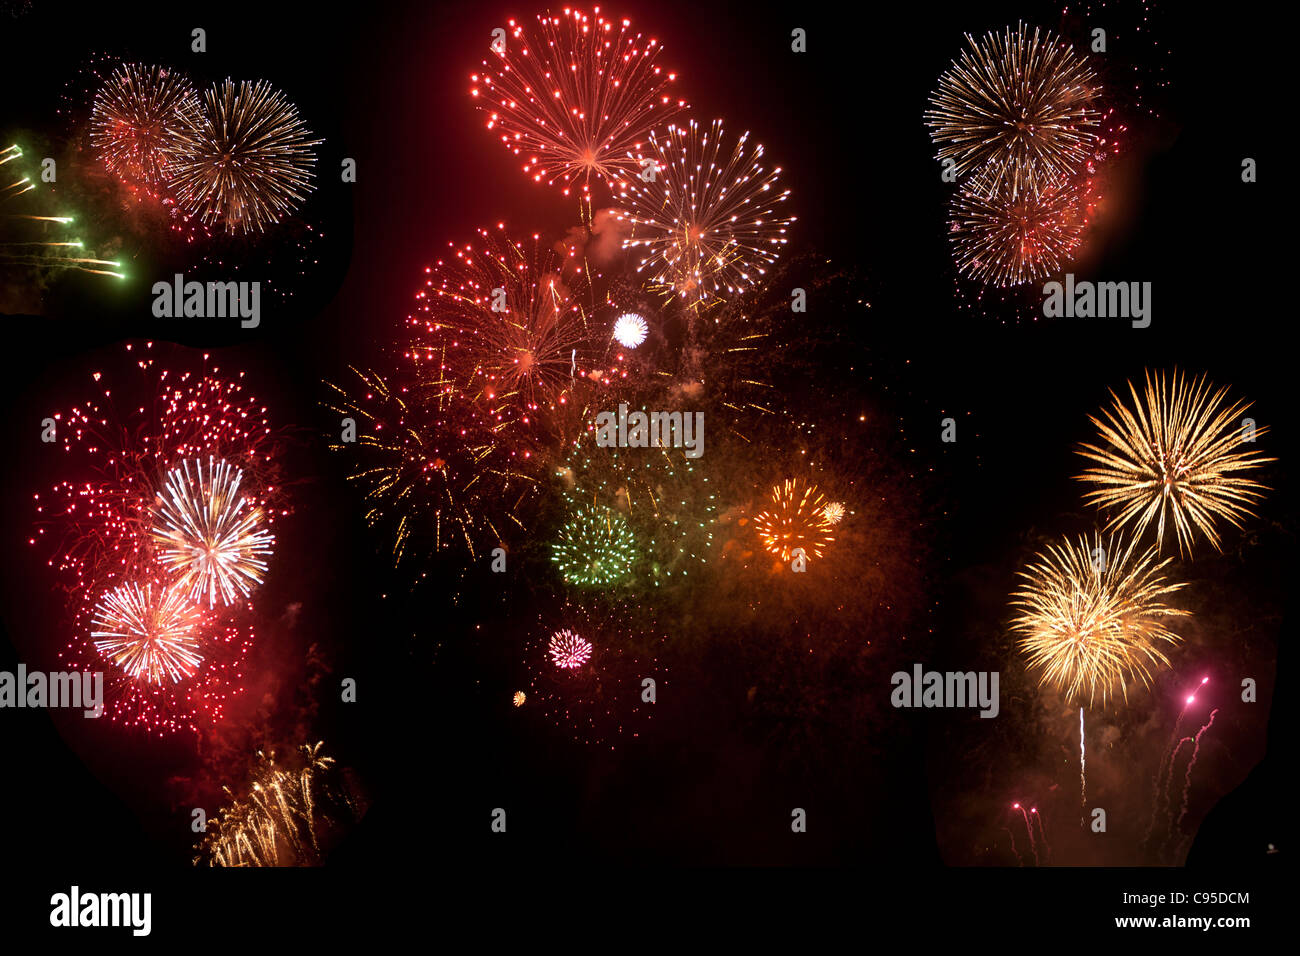 Fireworks in Singapore - Stock Image